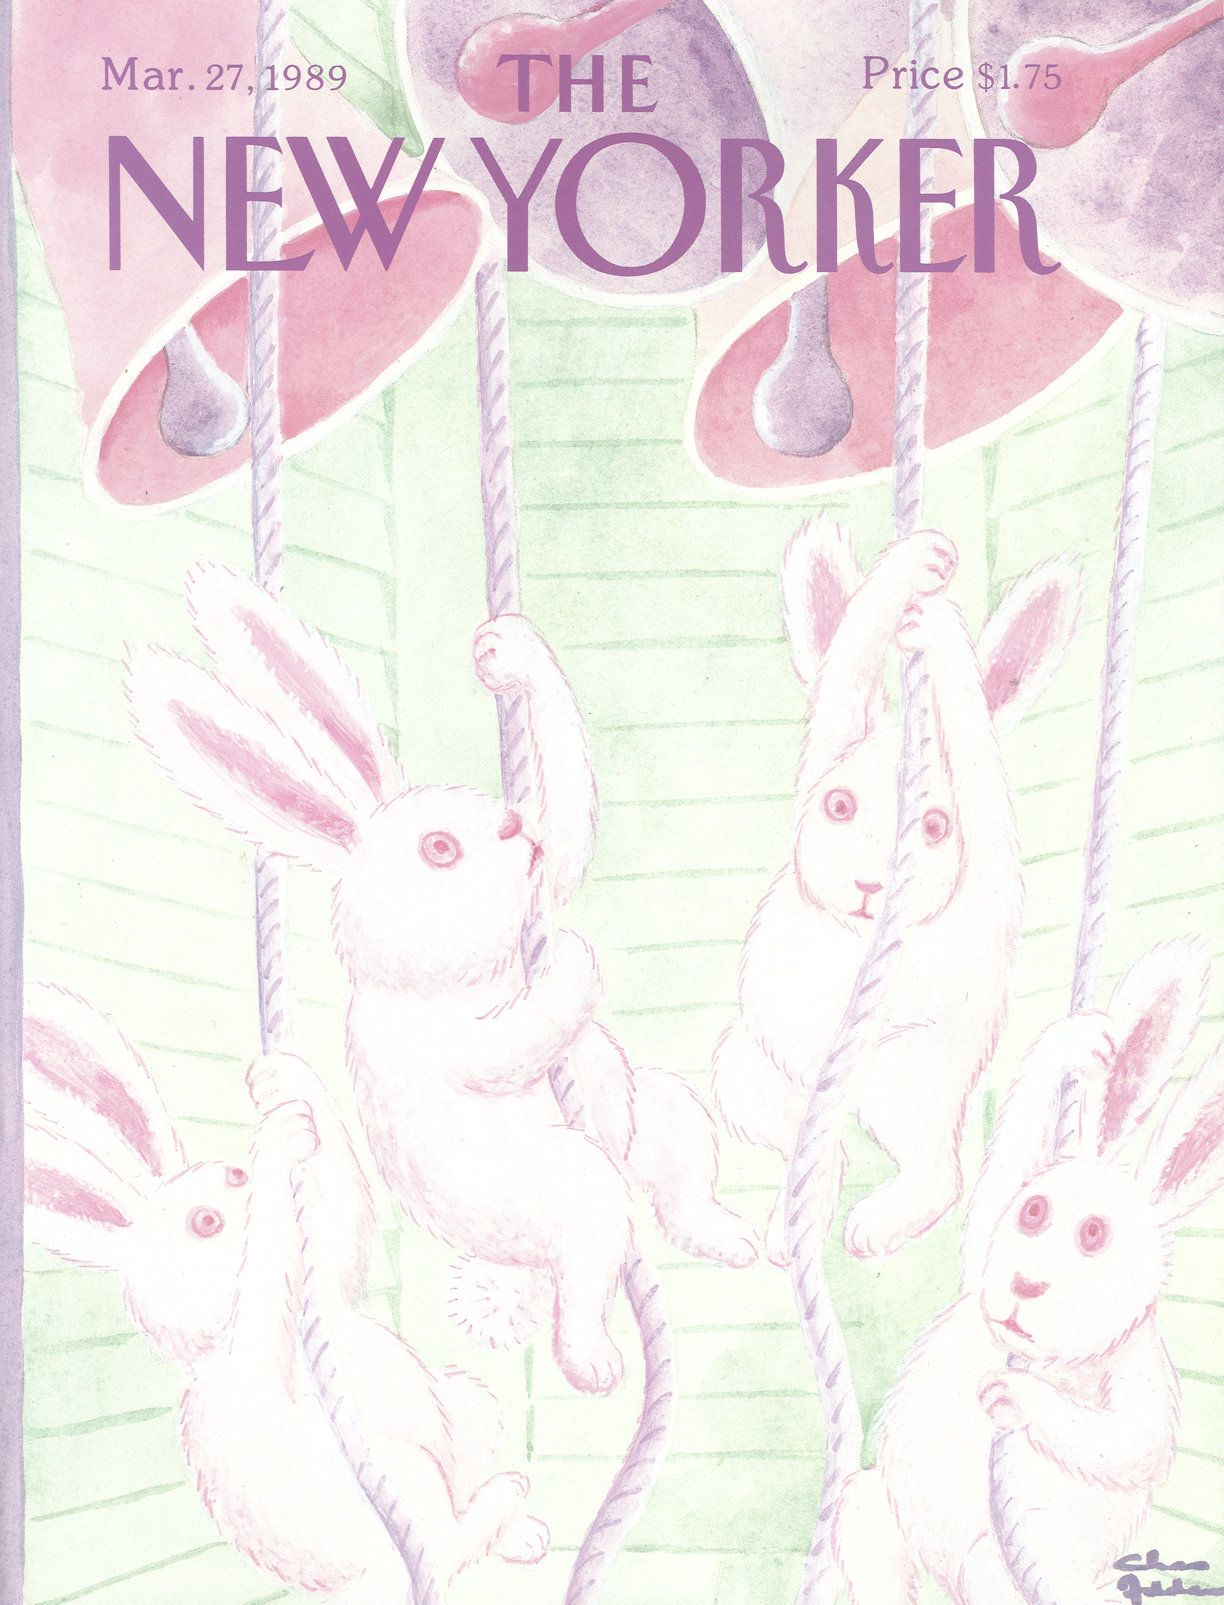 The New Yorker - Monday, March 27, 1989 - Issue # 3345 - Vol. 65 - N° 6 - Cover by : Charles Addams